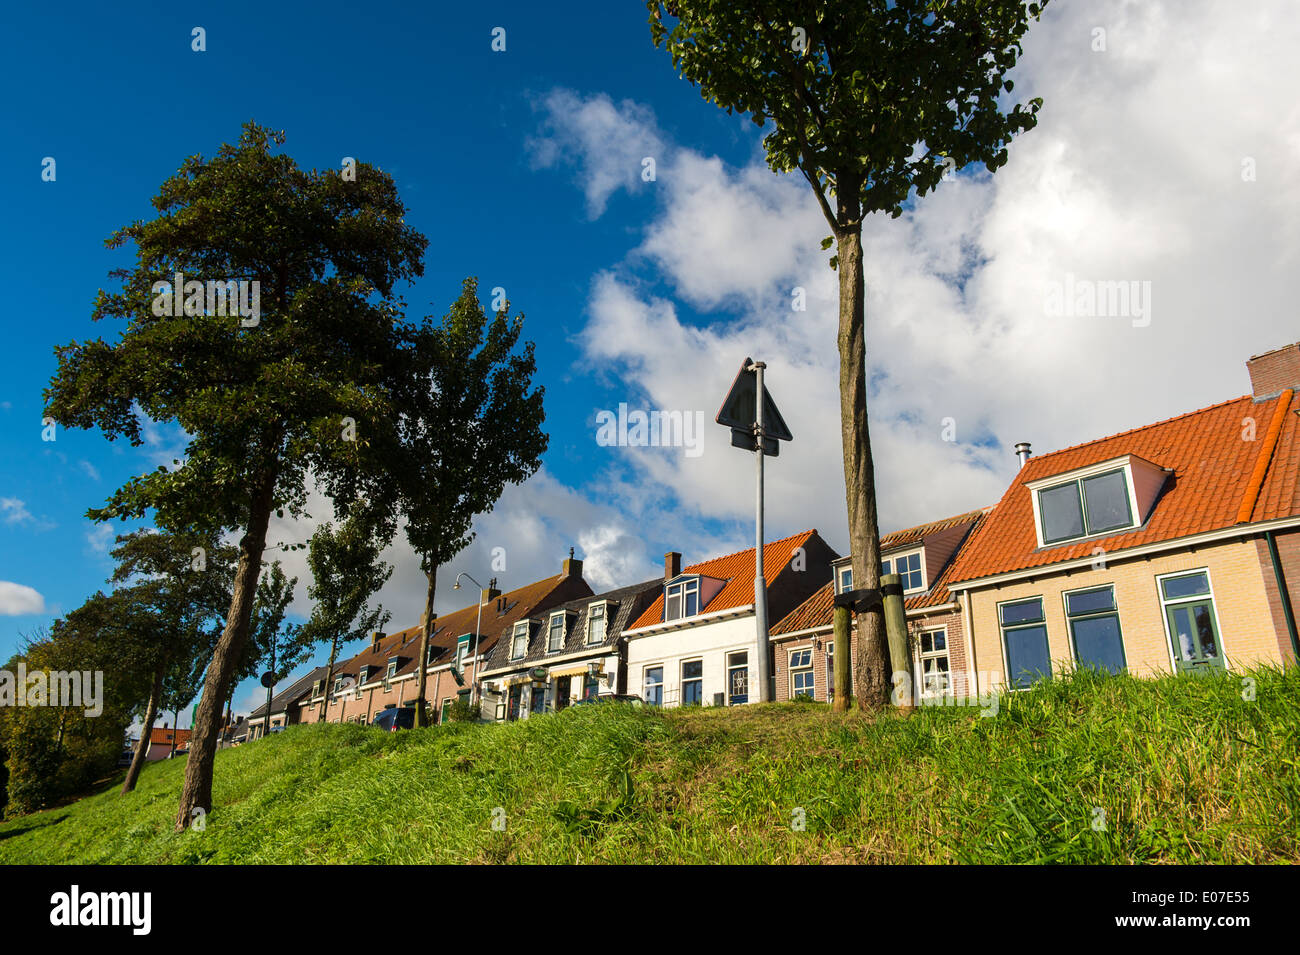 Row dutch dike houses in village Zonnemaire at Zeeland - Stock Image